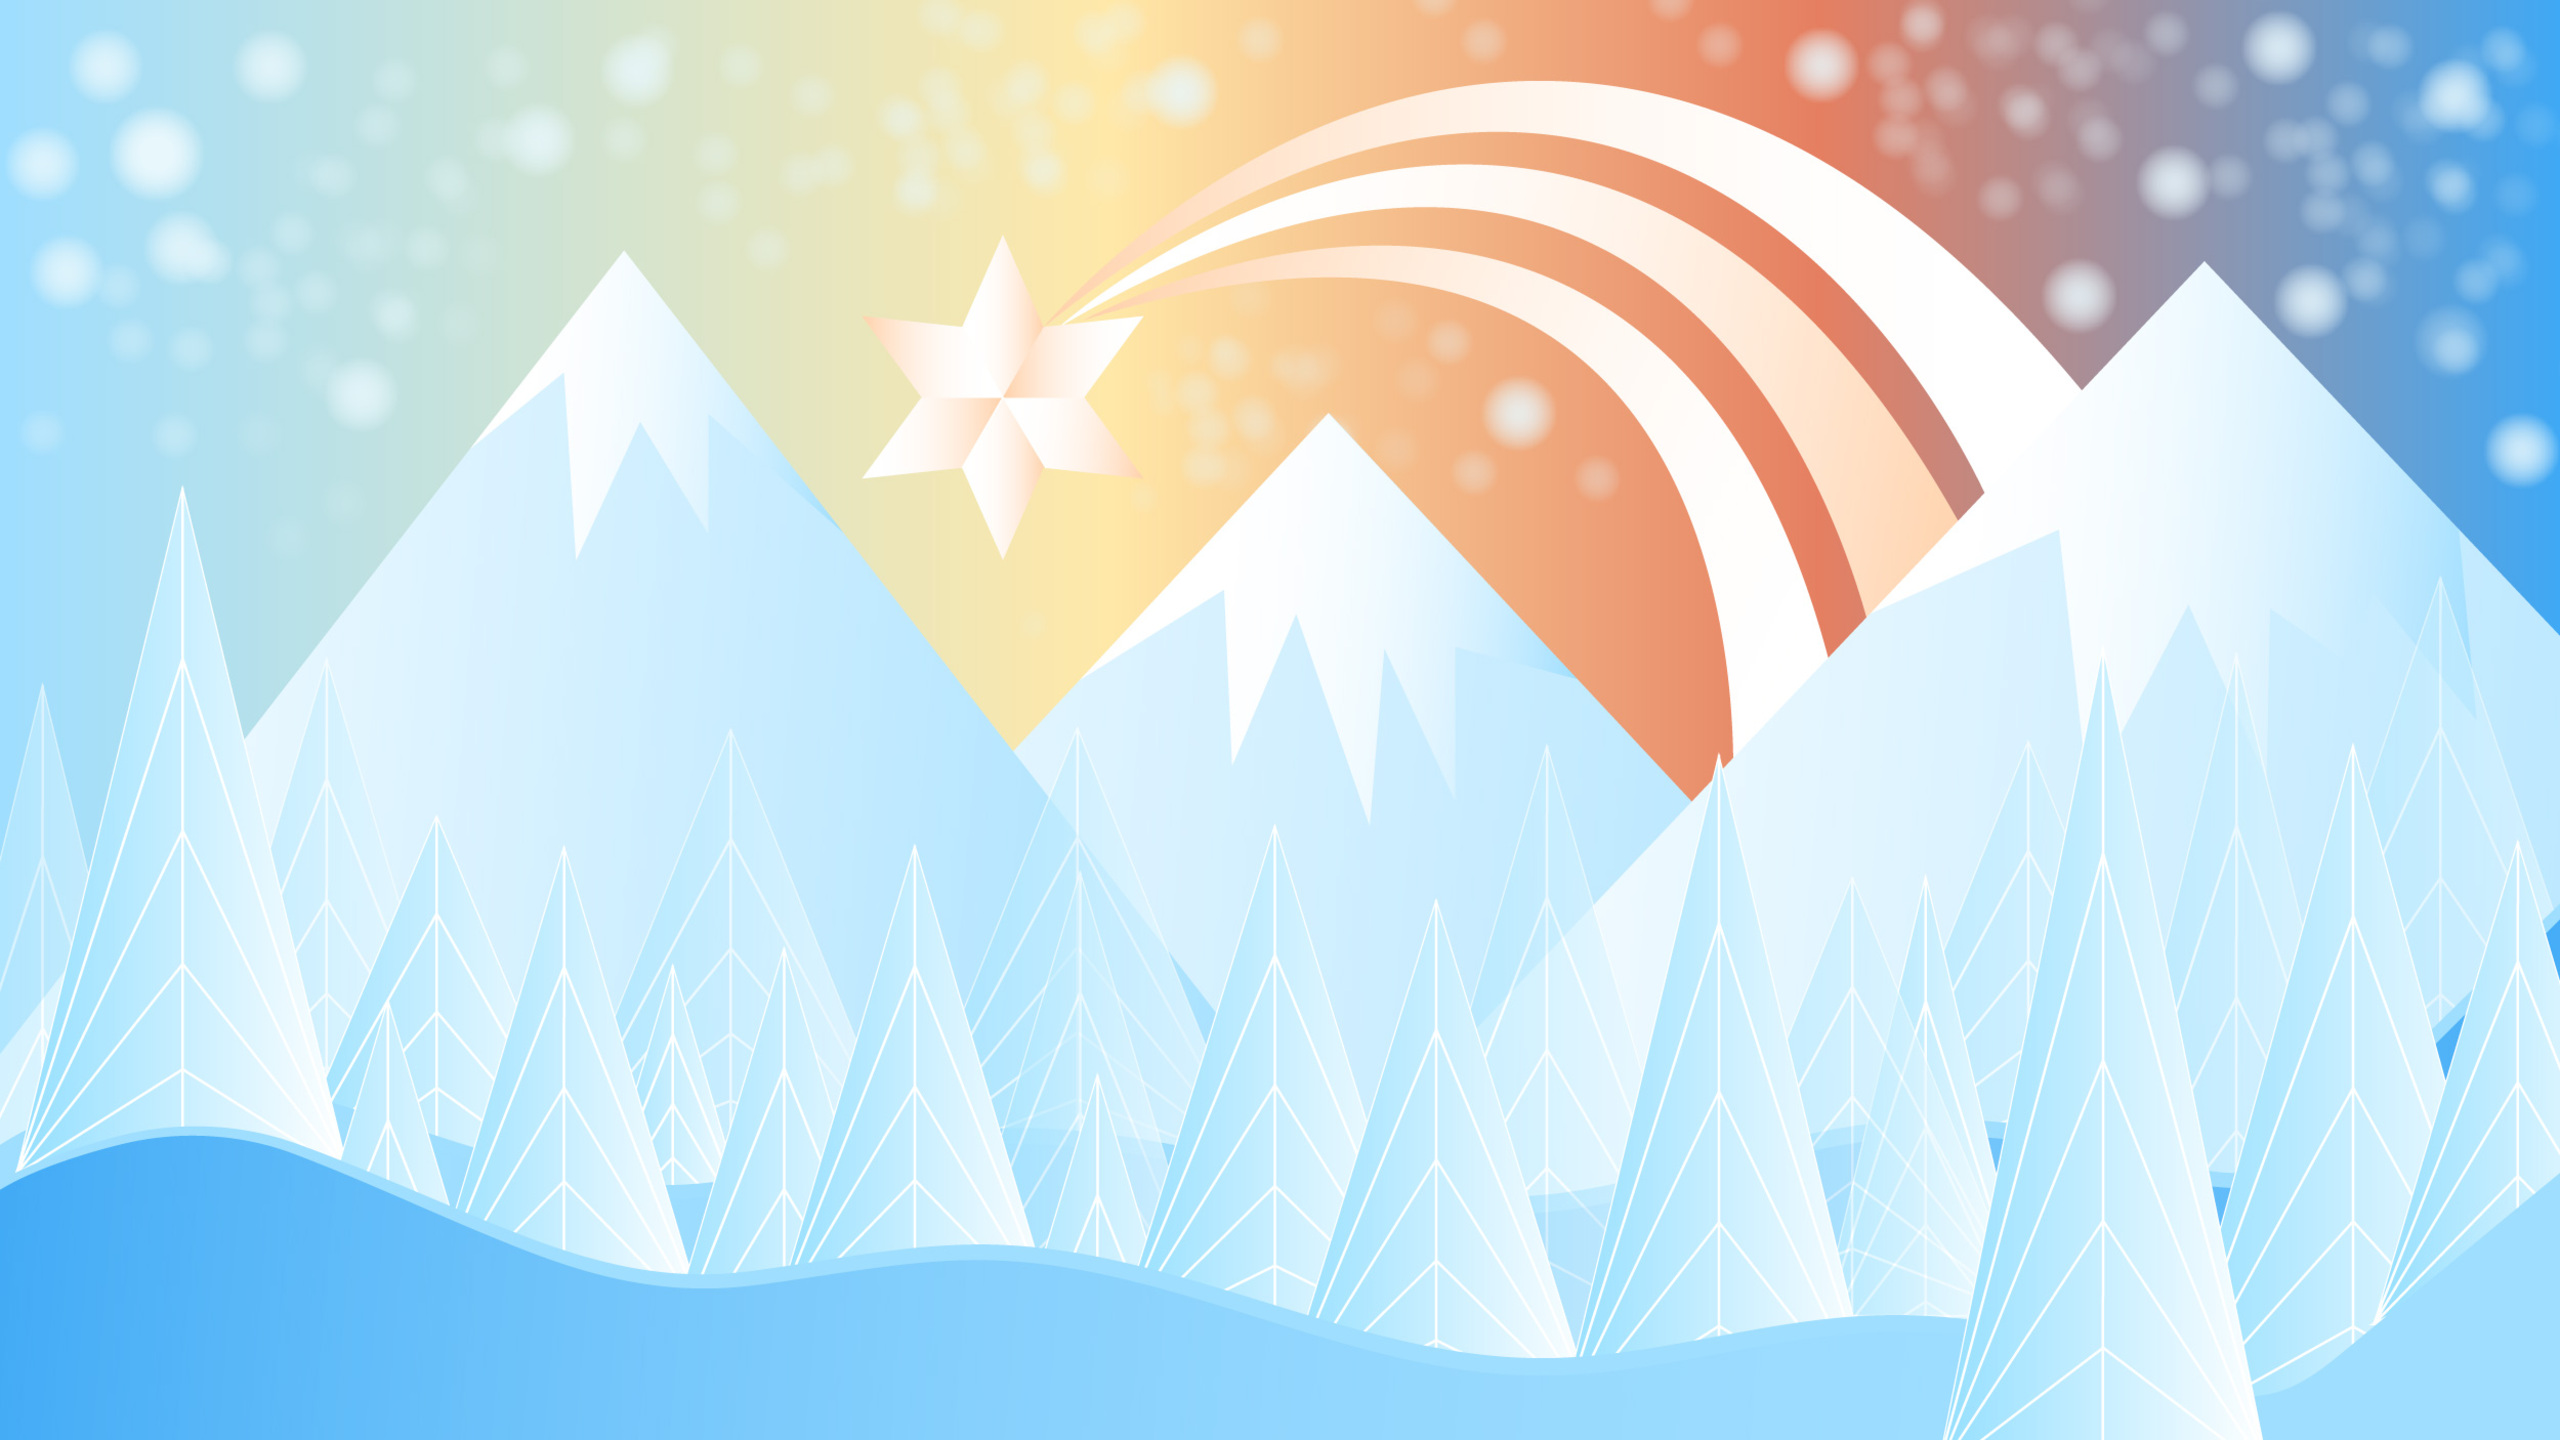 winter-snow-christmas-mountains-minimalism-7r.jpg